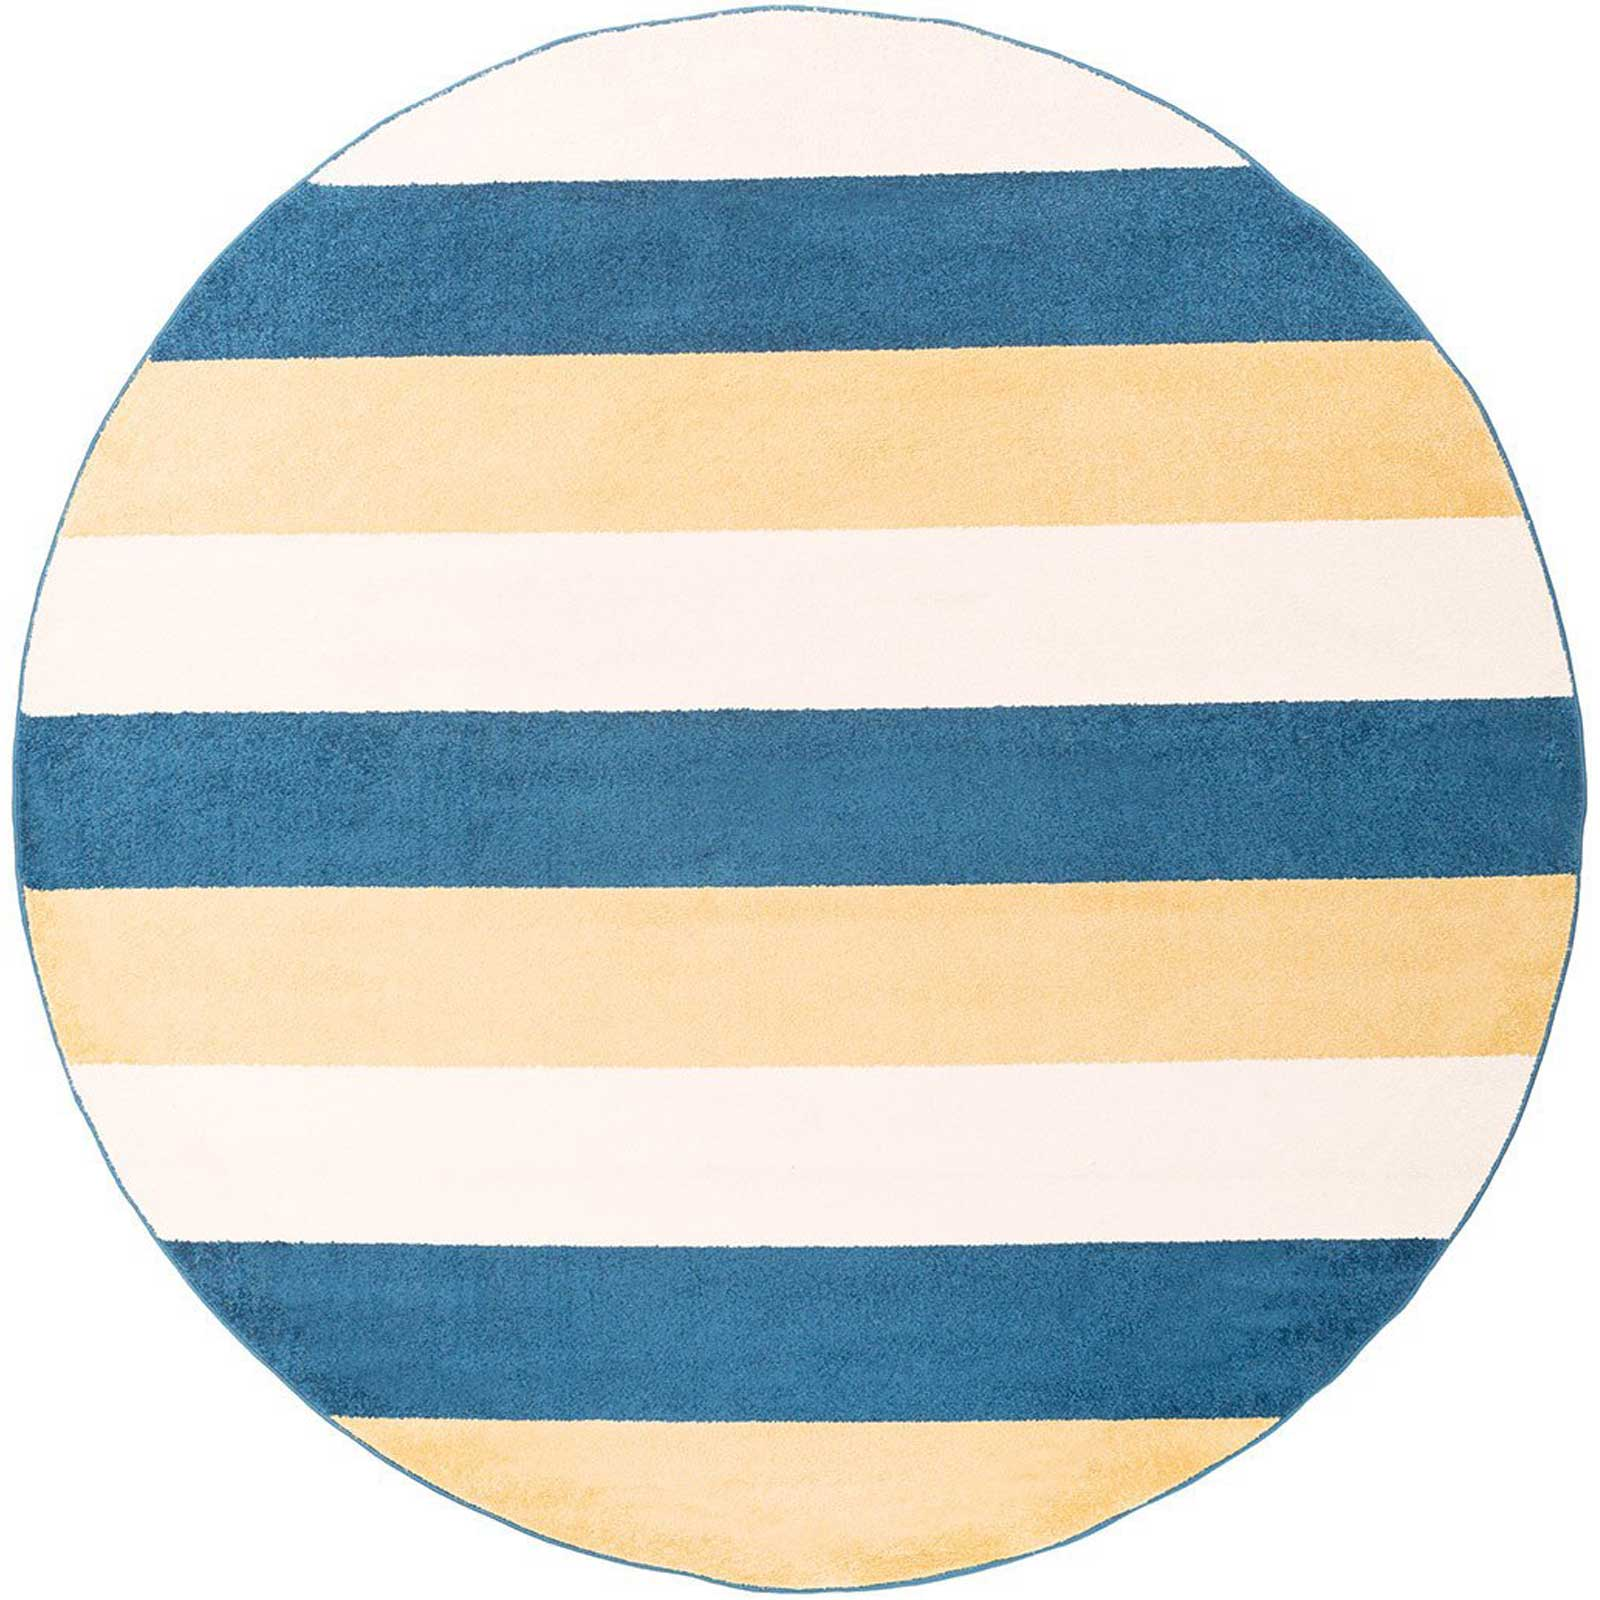 Horizon Striped Cobalt/Gold Round Rug